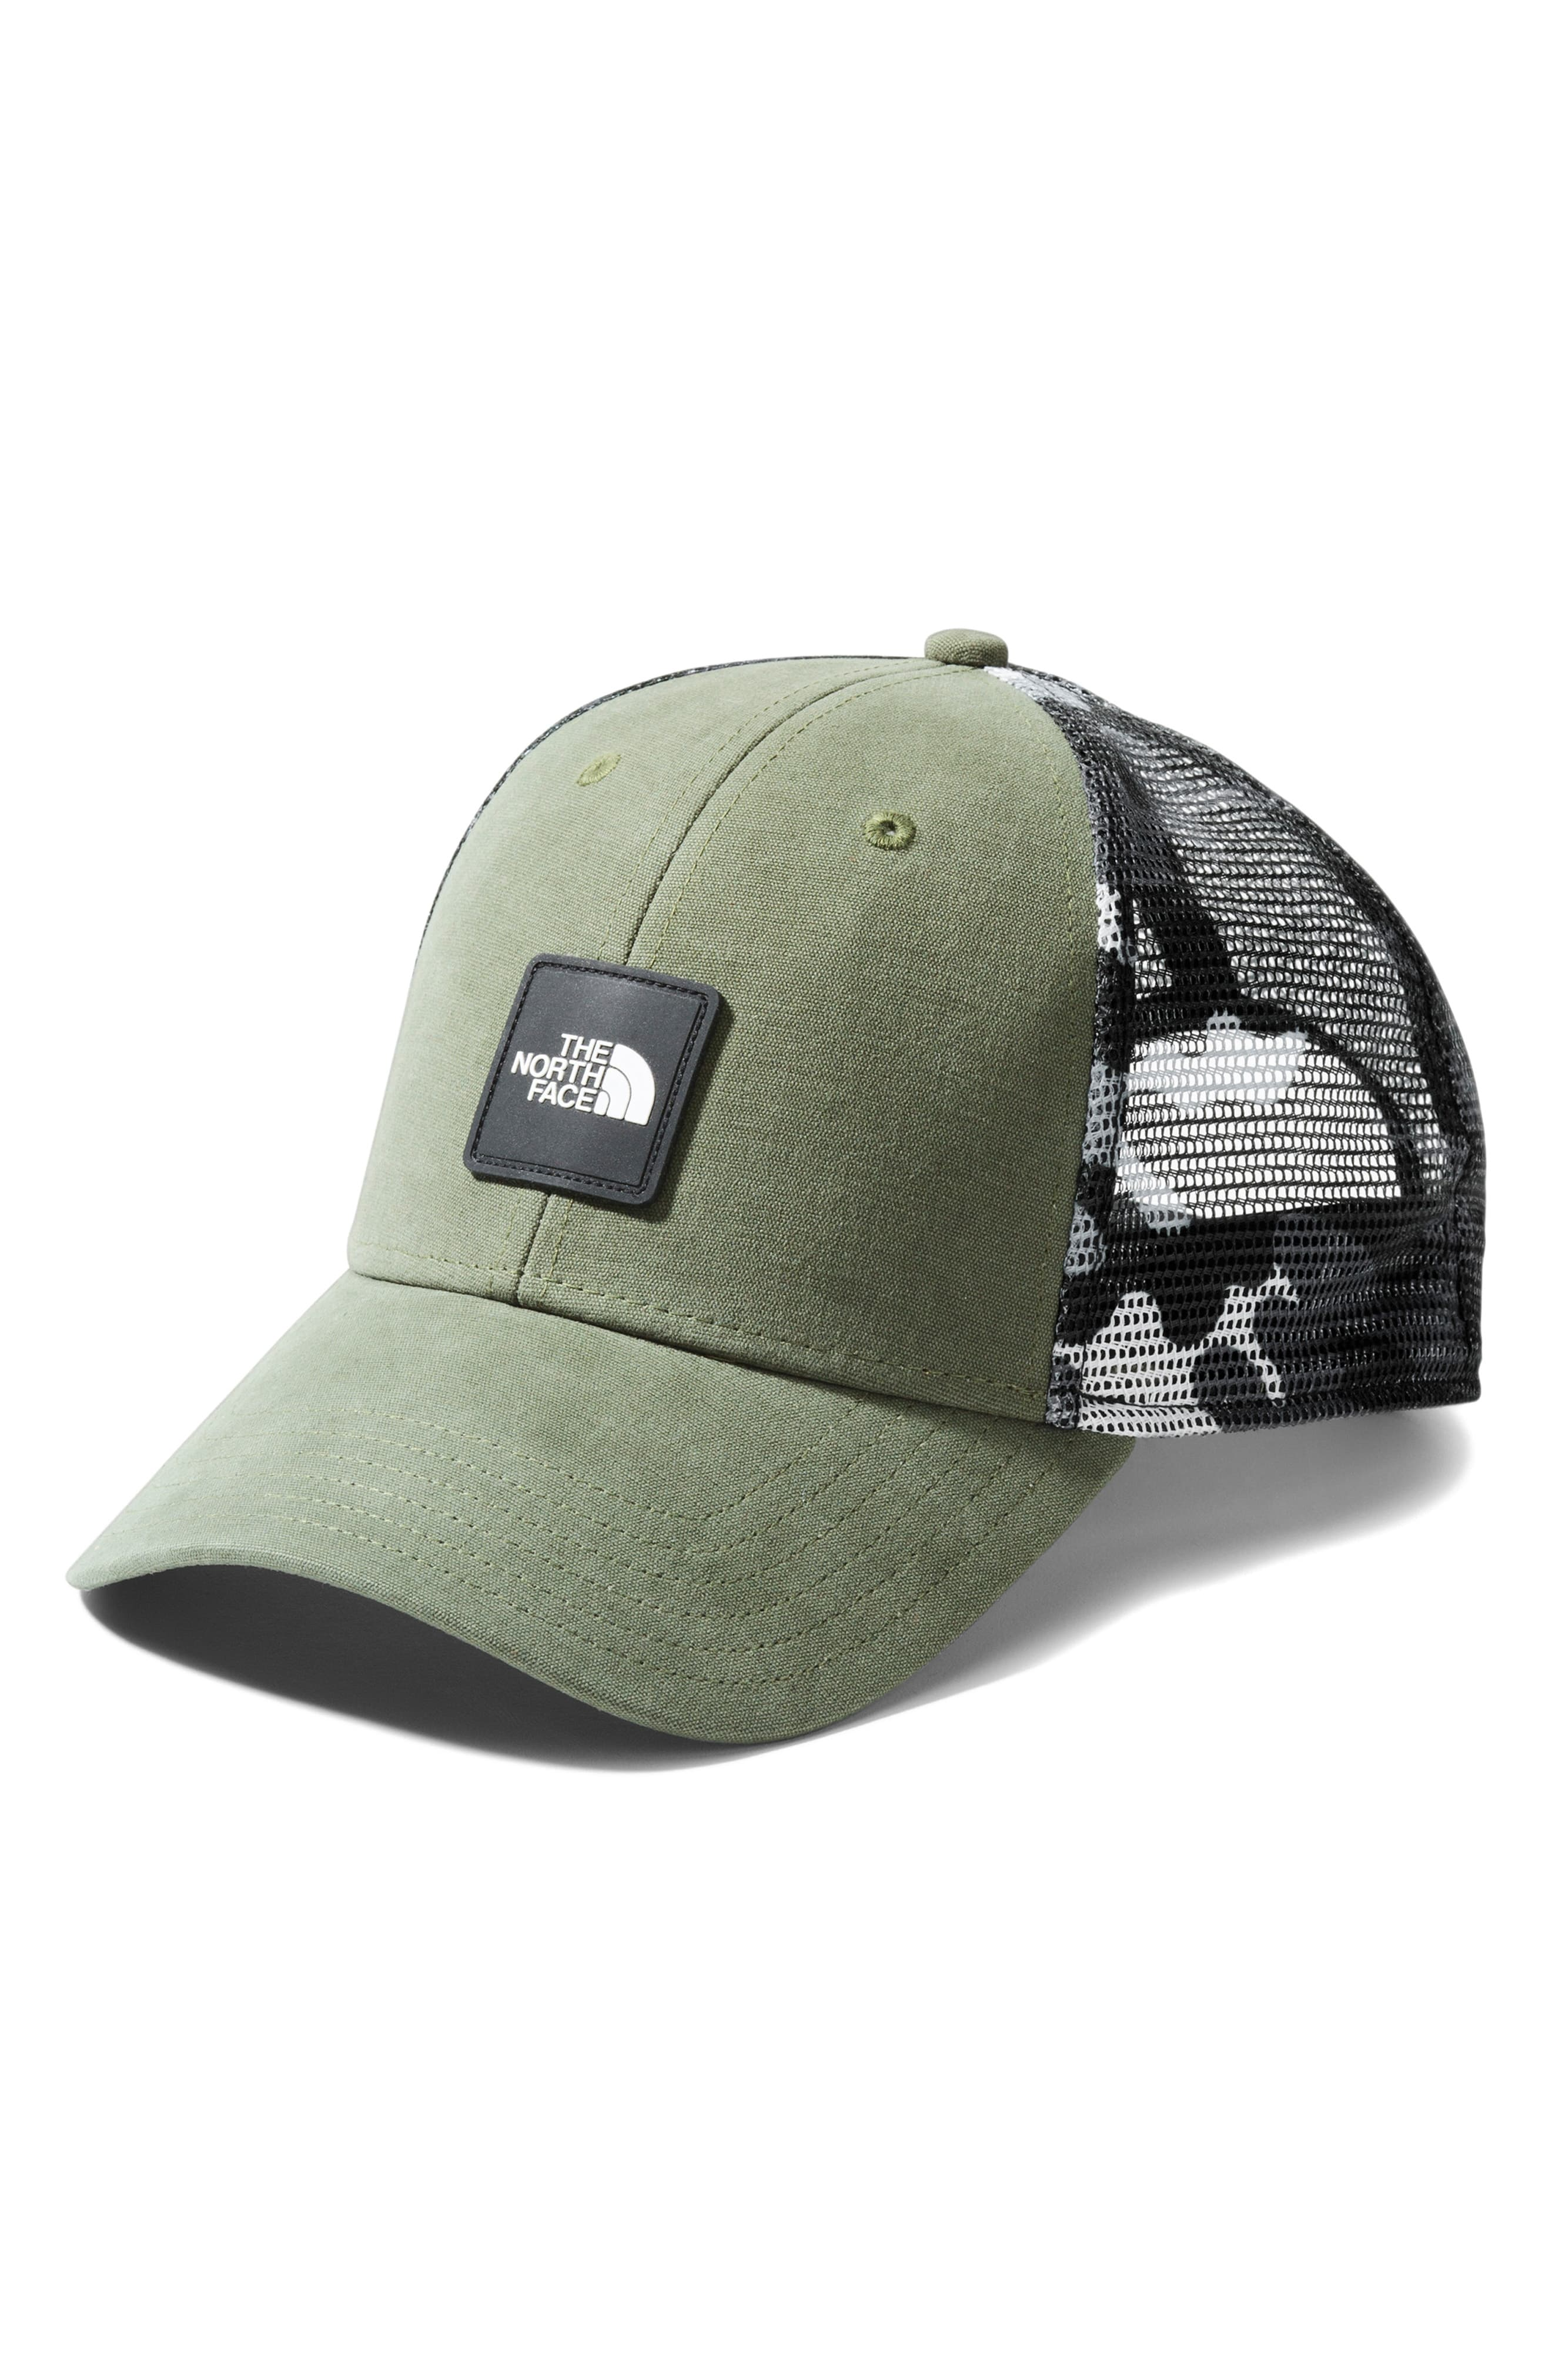 1c4c9e676 The North Face Mudder Trucker Cap in 2019 | Products | The north ...